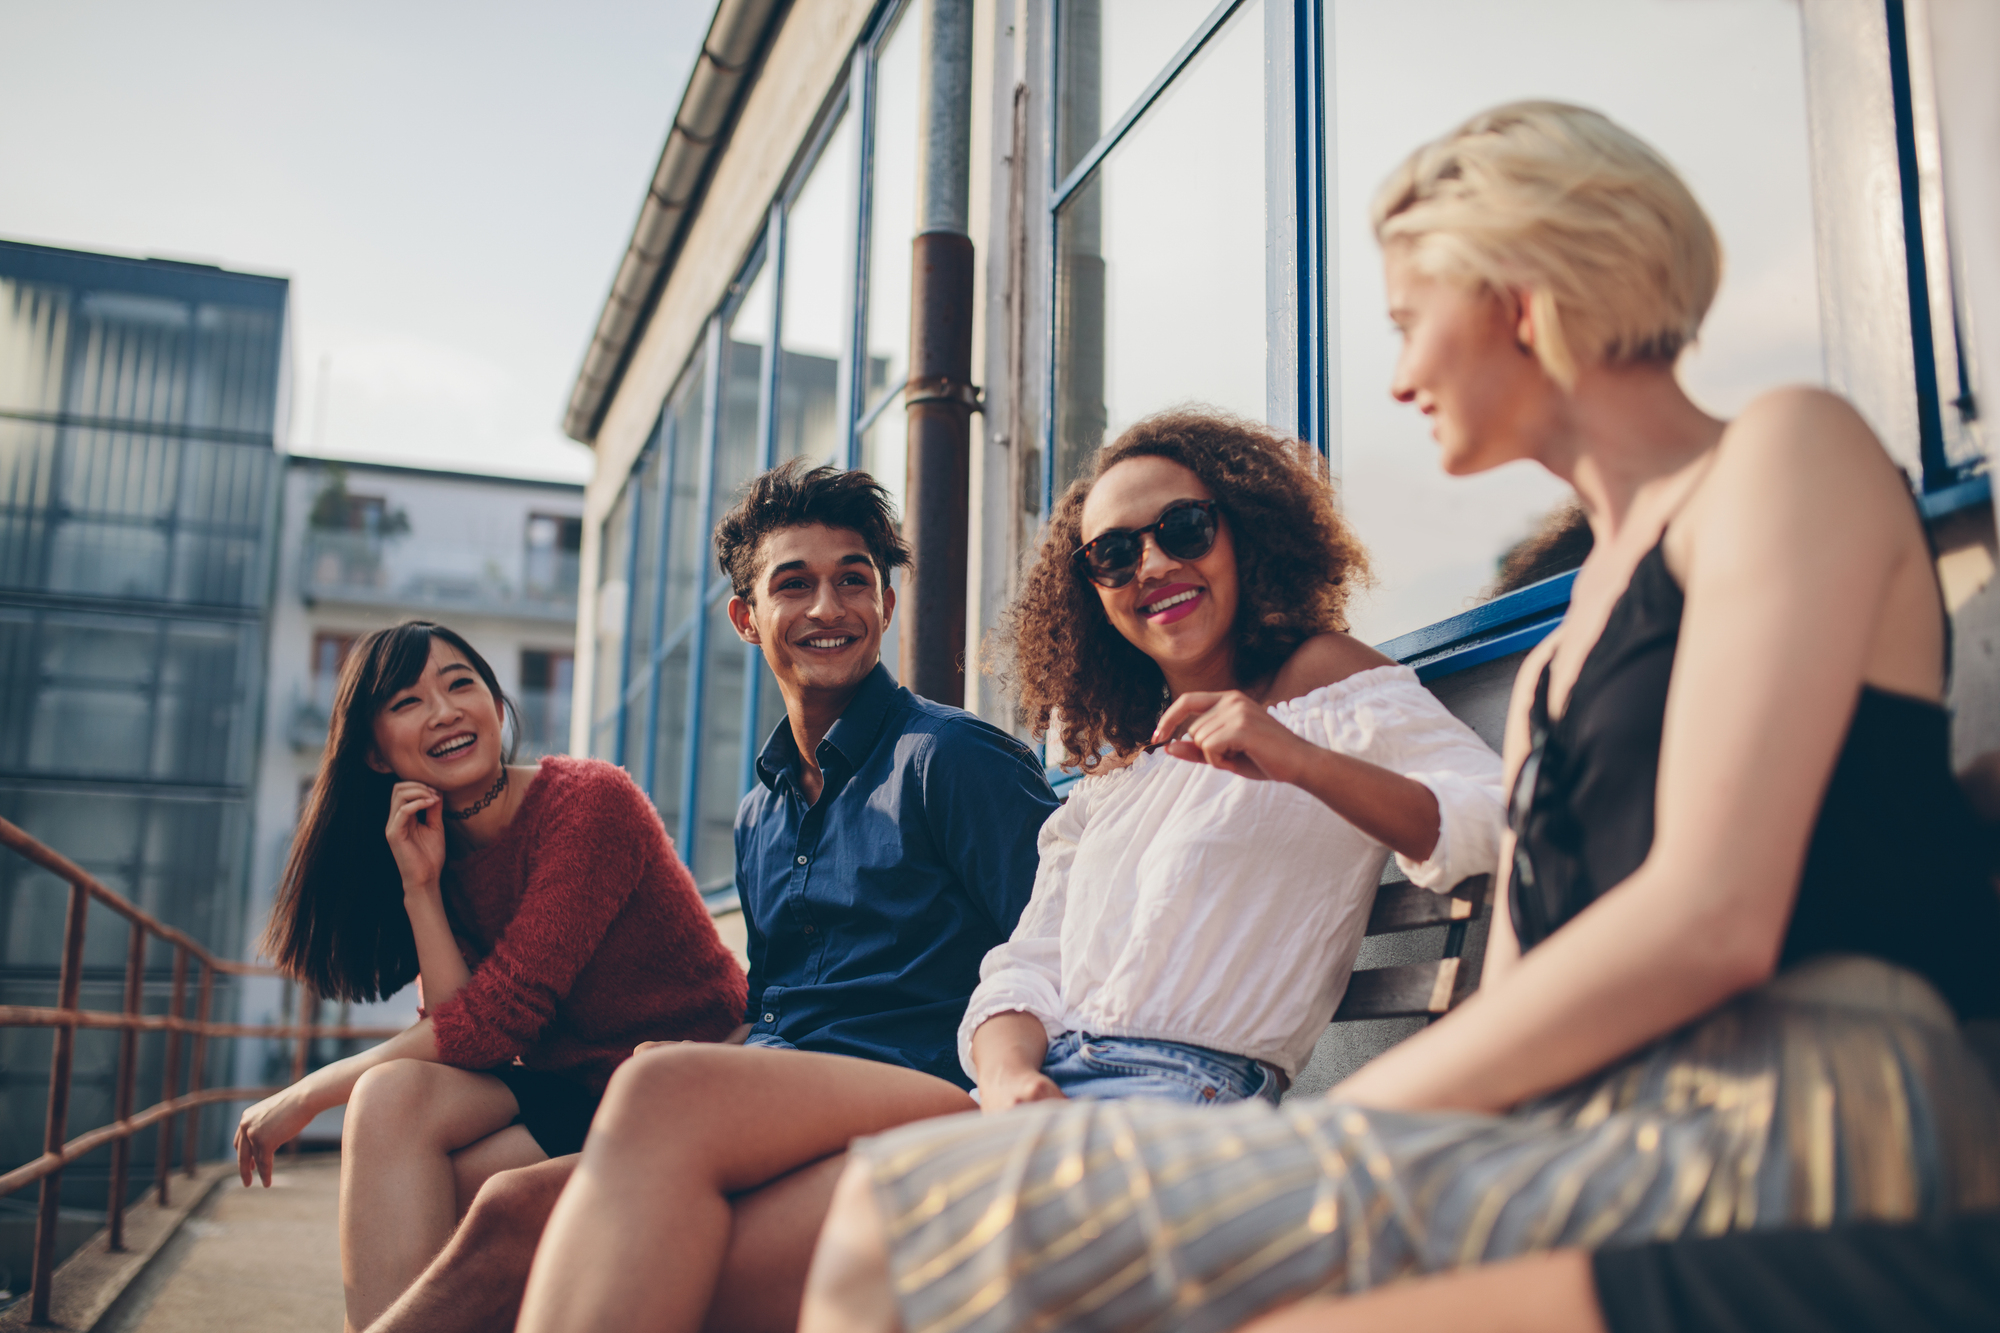 Diverse multiethnic group of friends on balcony fun